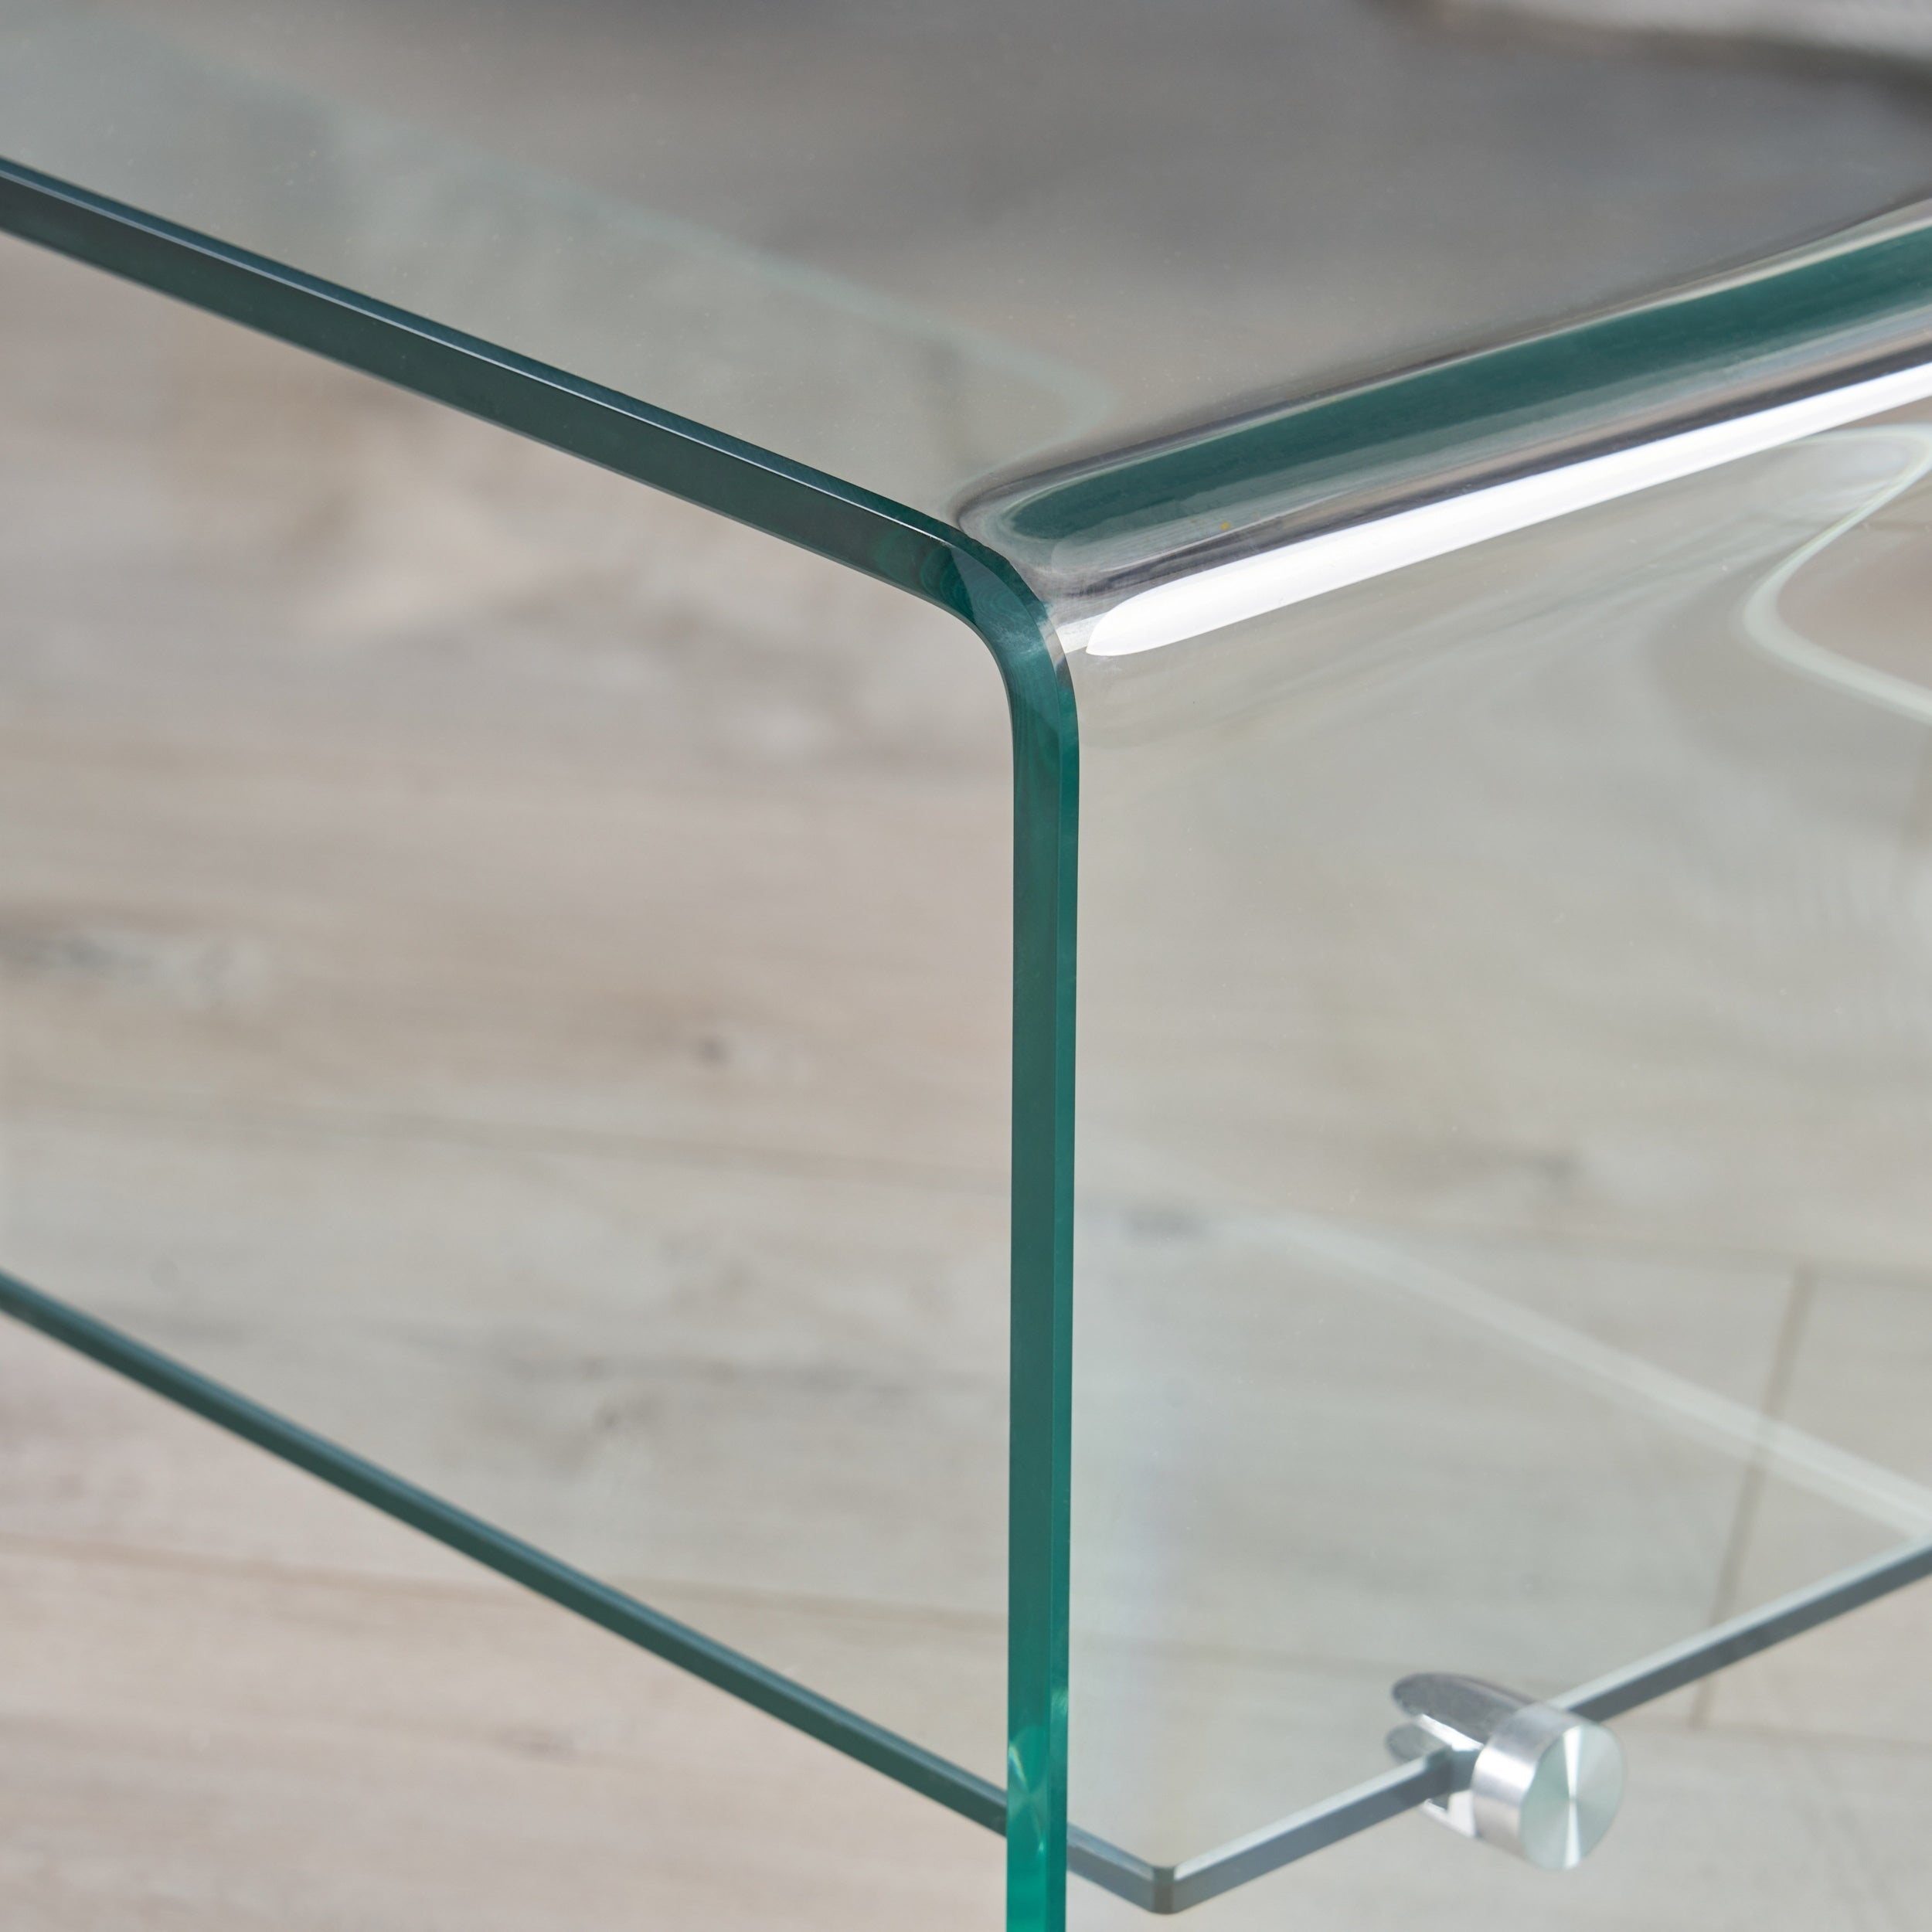 Glass for coffee table Modern Shop Ramona Glass Coffee Table With Shelf By Christopher Knight Home Free Shipping Today Overstockcom 9078618 Overstock Shop Ramona Glass Coffee Table With Shelf By Christopher Knight Home